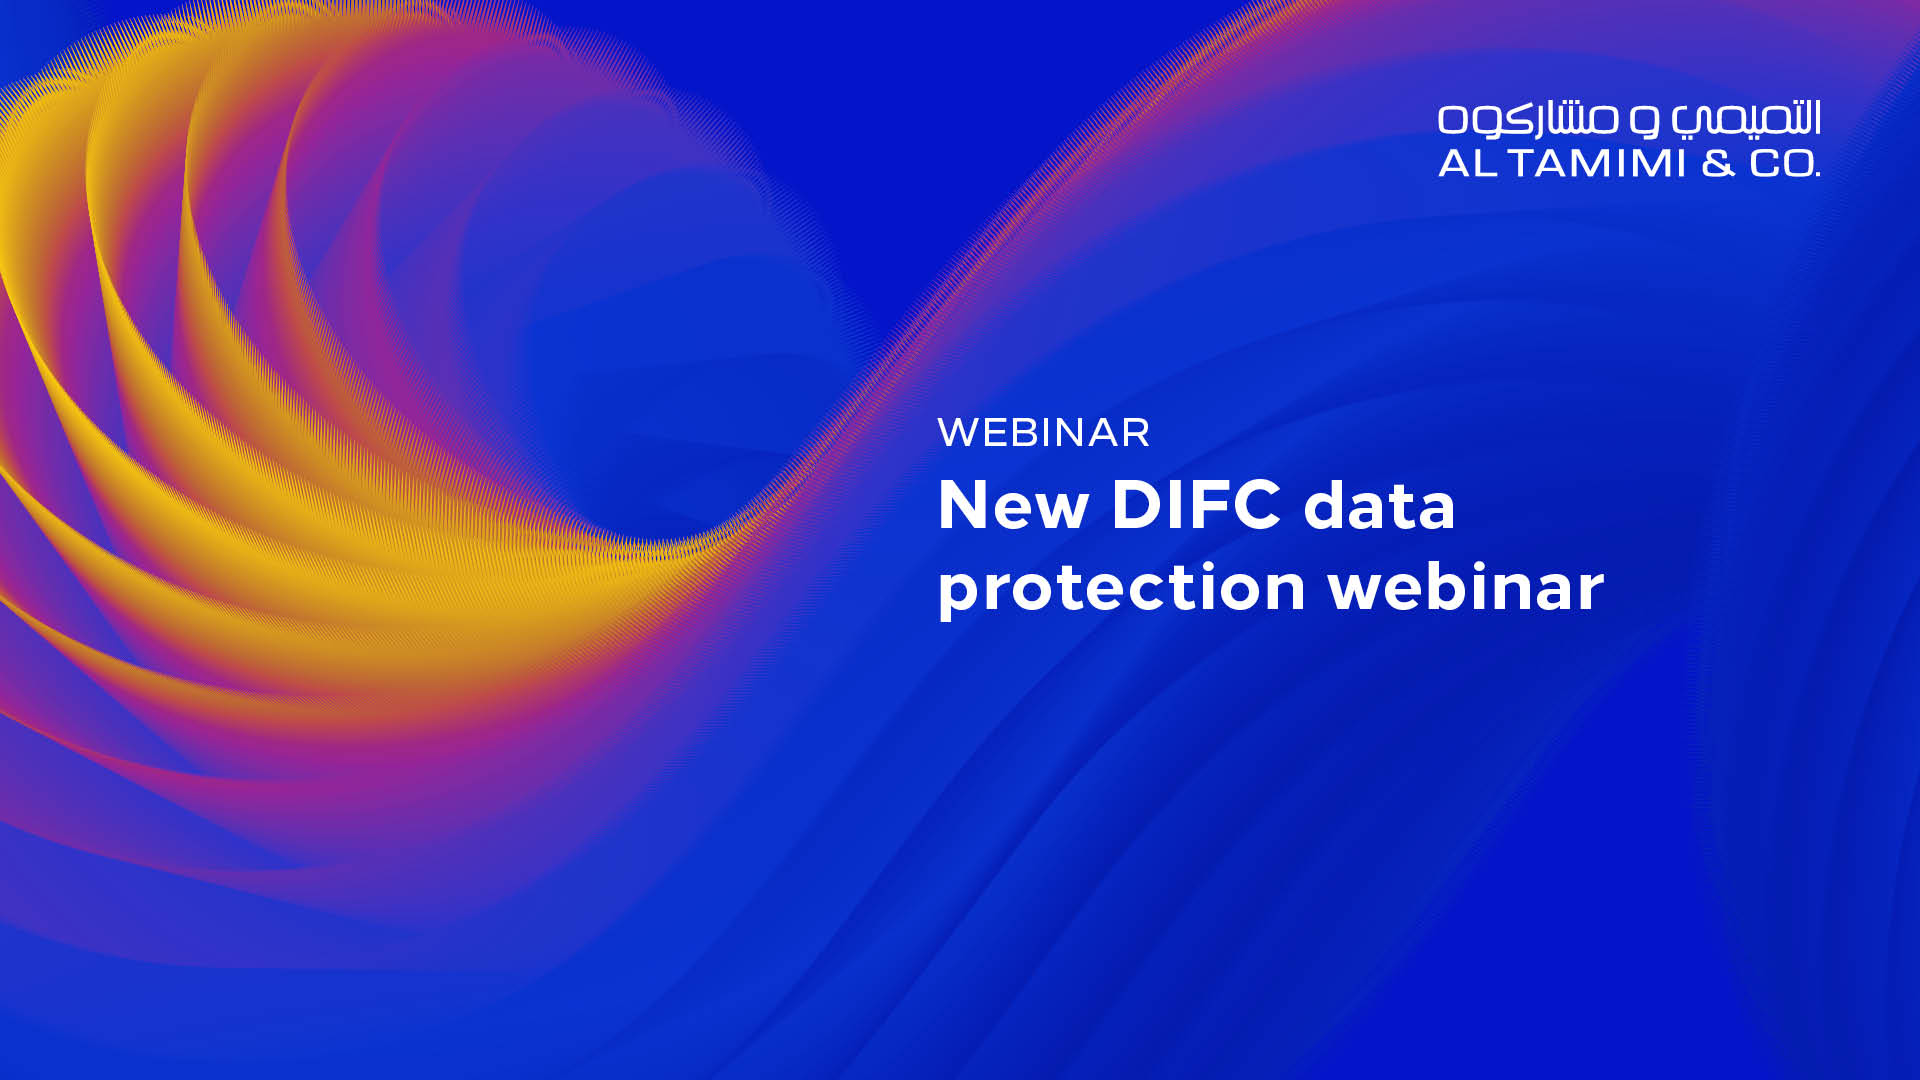 New DIFC data protection webinar